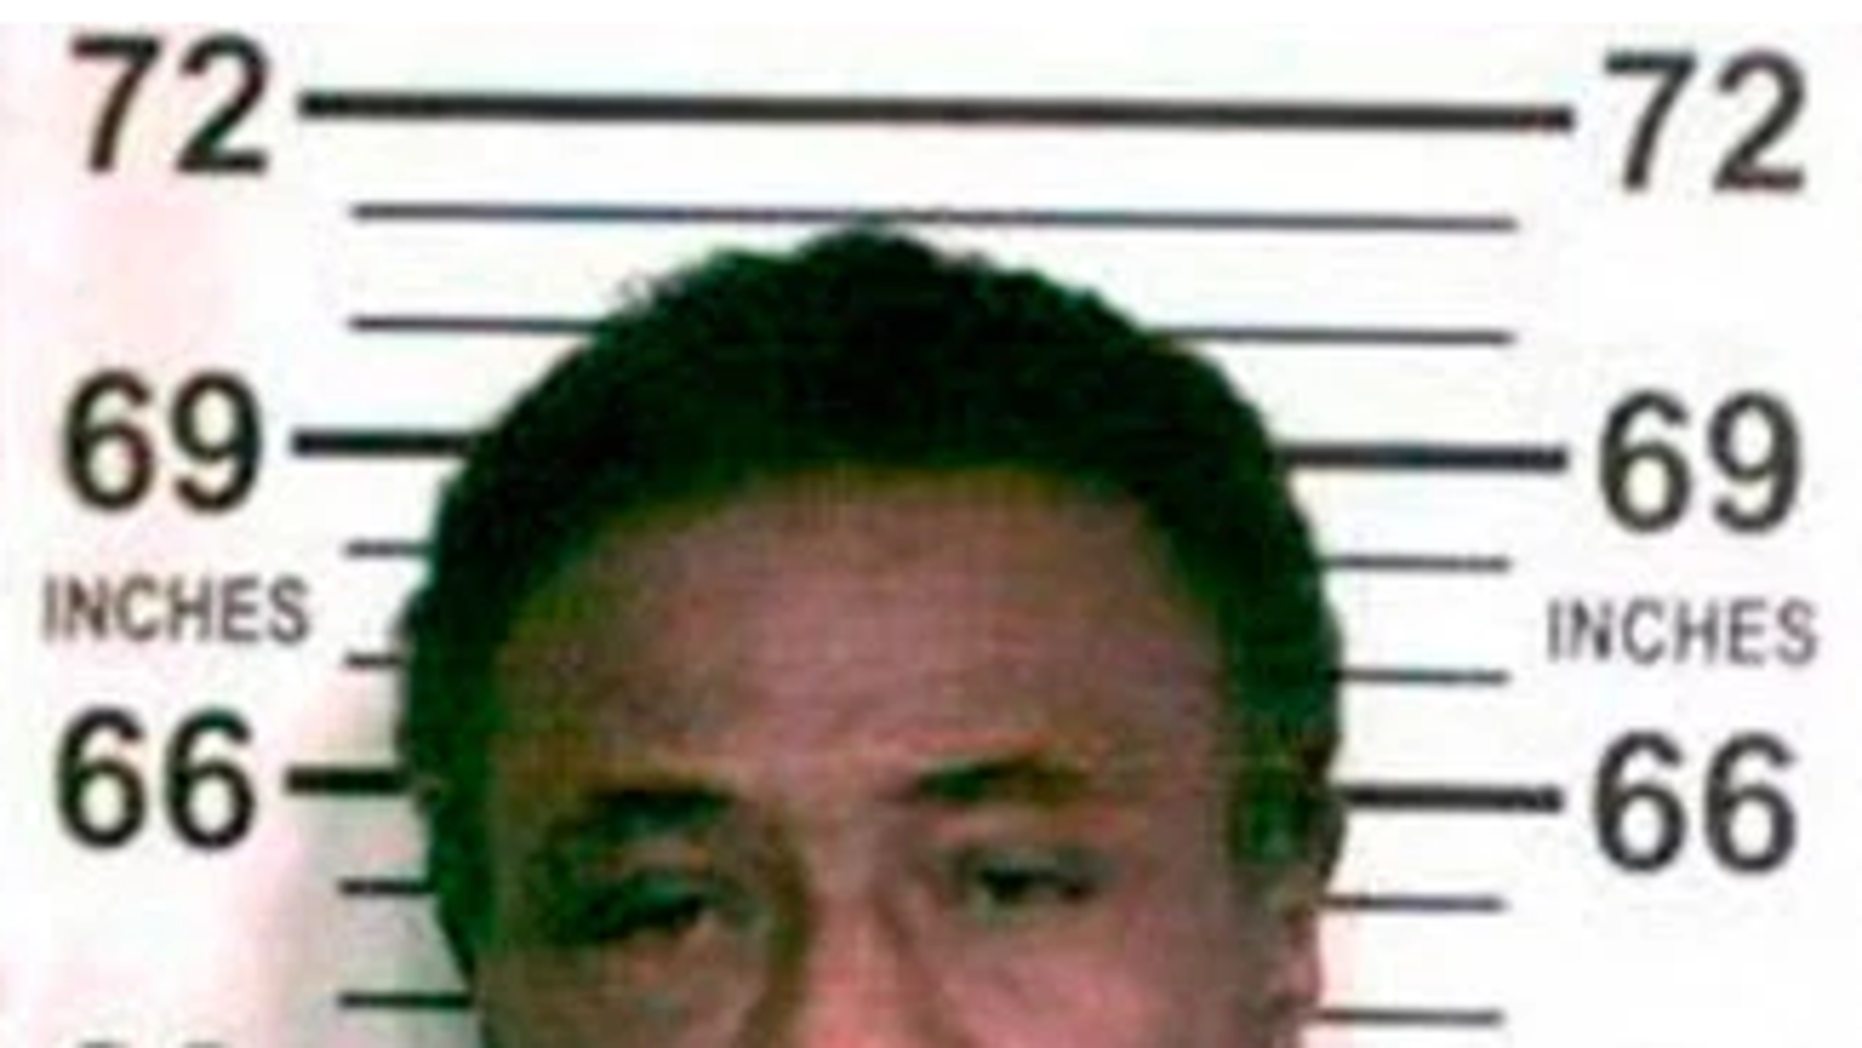 Herman Bell, 70, a former radical who killed two New York City police officerers in 1971, was paroled April 27.